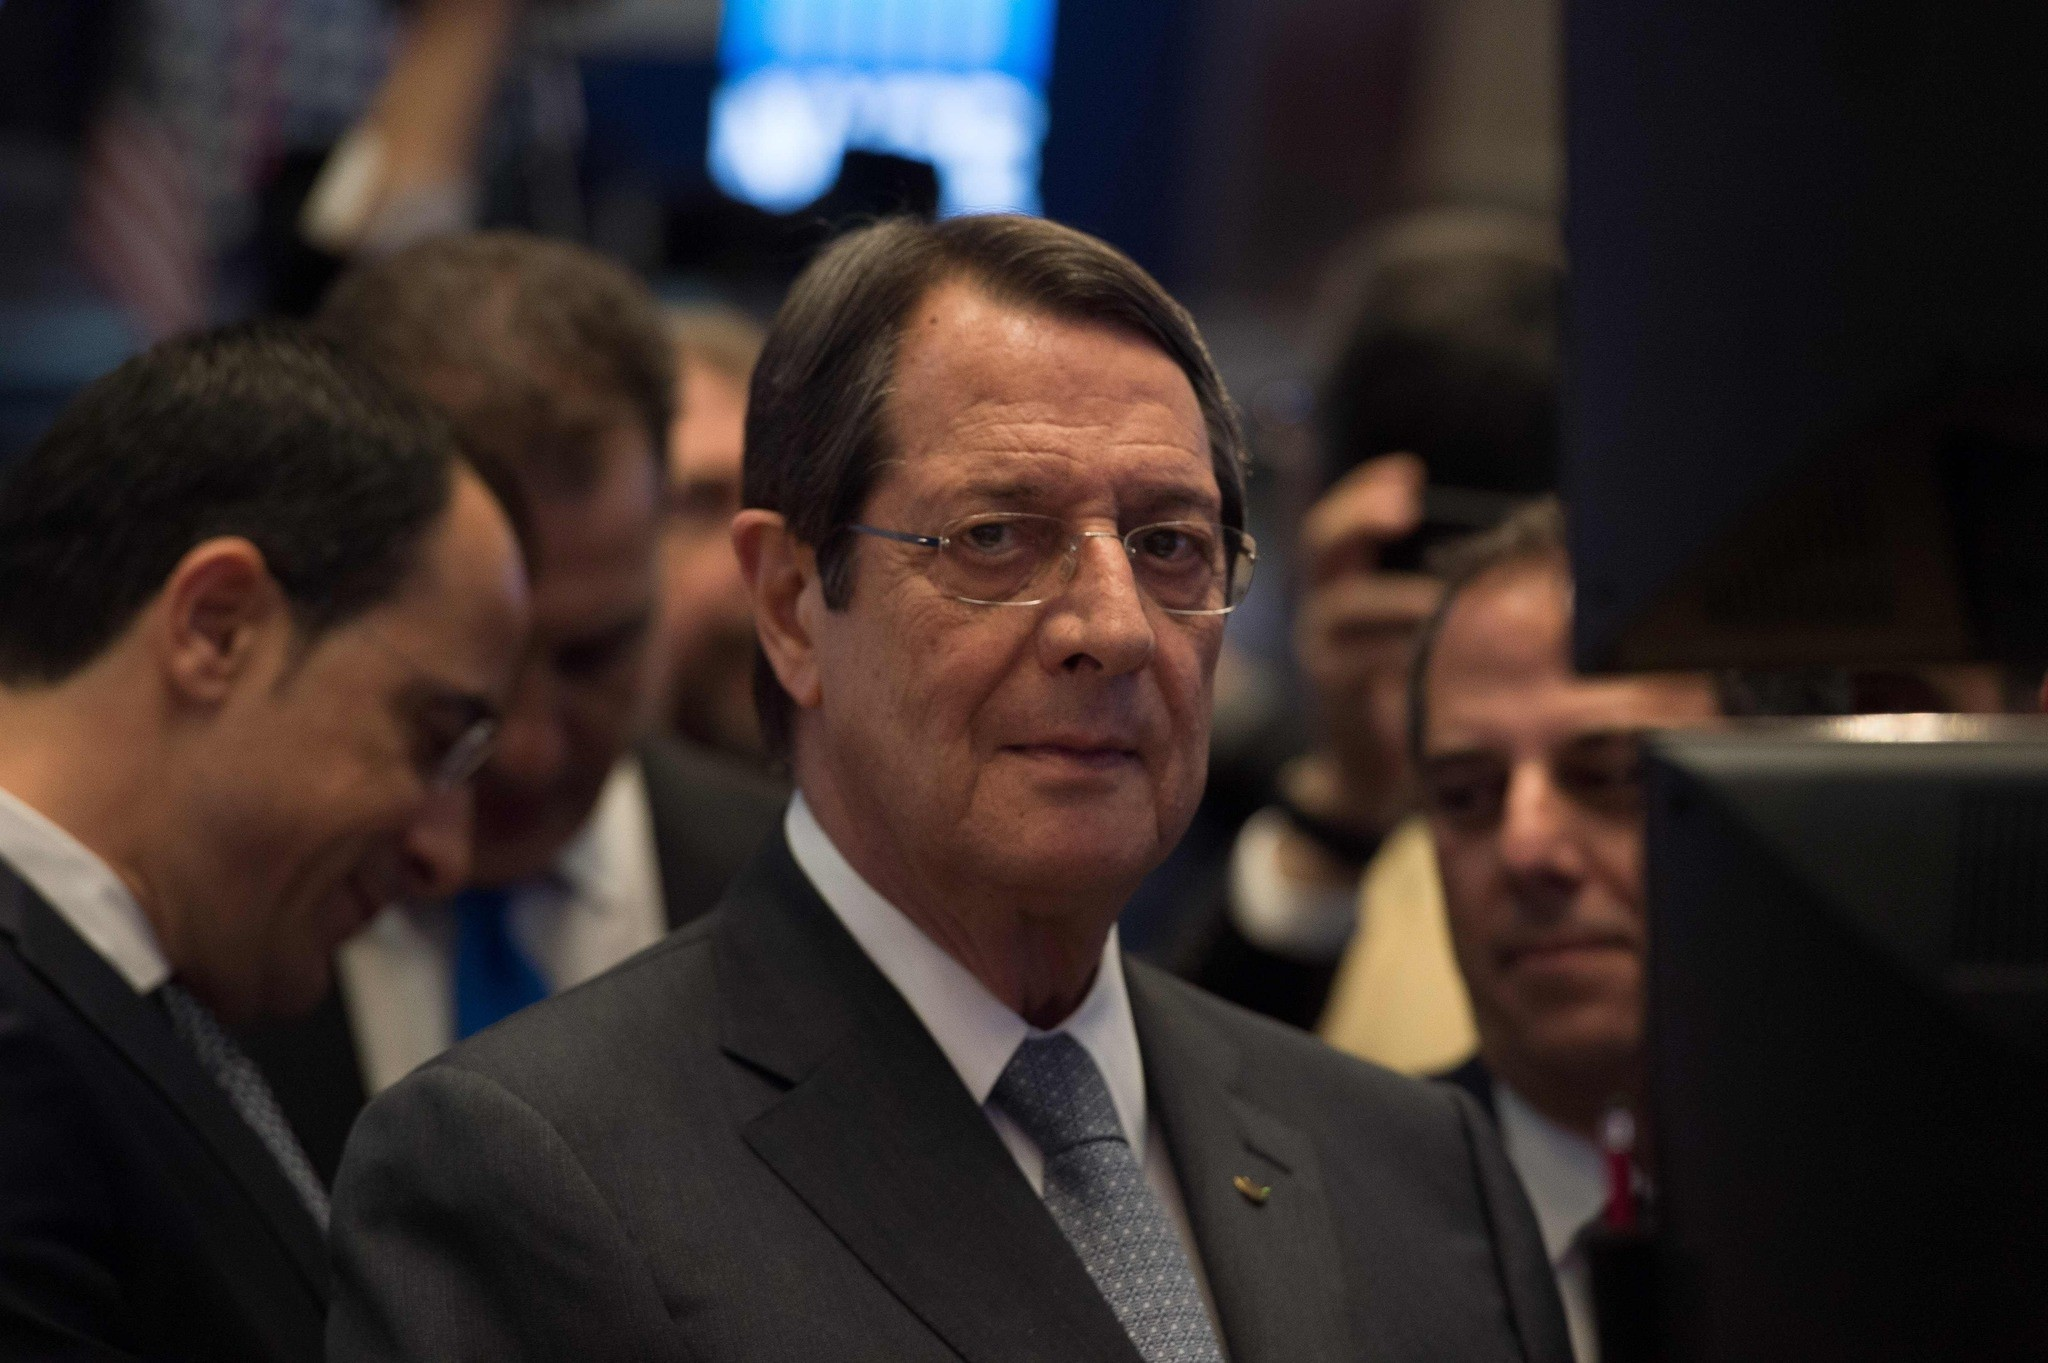 Greek Cypriot leader Nicos Anastasiades (C) walks on the floor before the closing bell of the Dow Jones at the New York Stock Exchange on March 21, 2017 in New York. (AFP Photo)